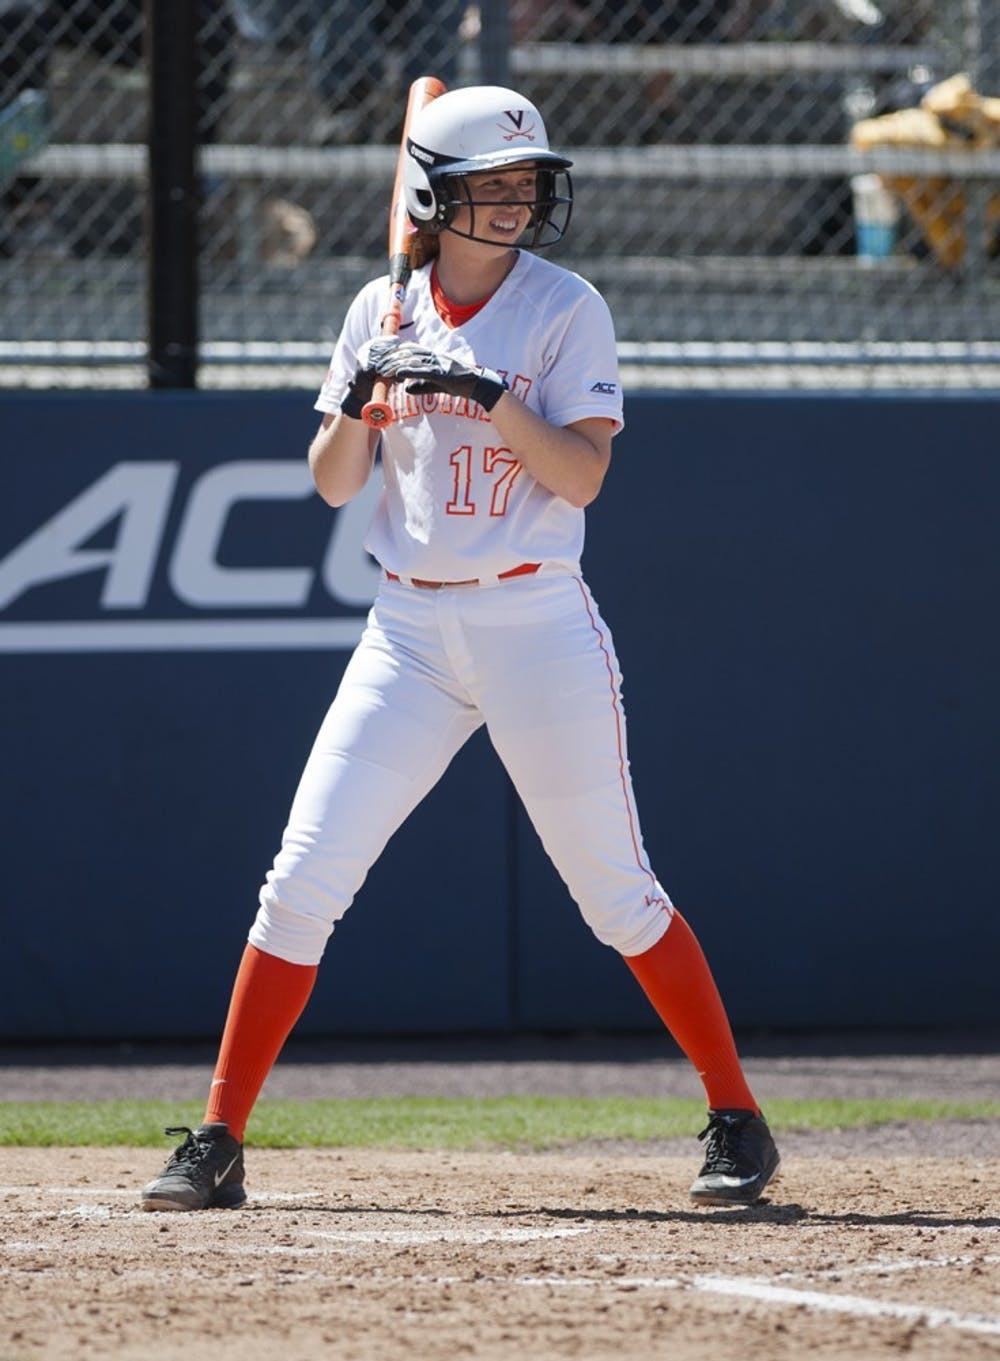 <p>Sophomore first baseman Kaitin Fitzgerald leads Virginia with a .364 batting average and 39 RBI. The Cavaliers must win all three games against Syracuse this weekend — and get some help from Georgia Tech — to gain postseason eligibility. </p>